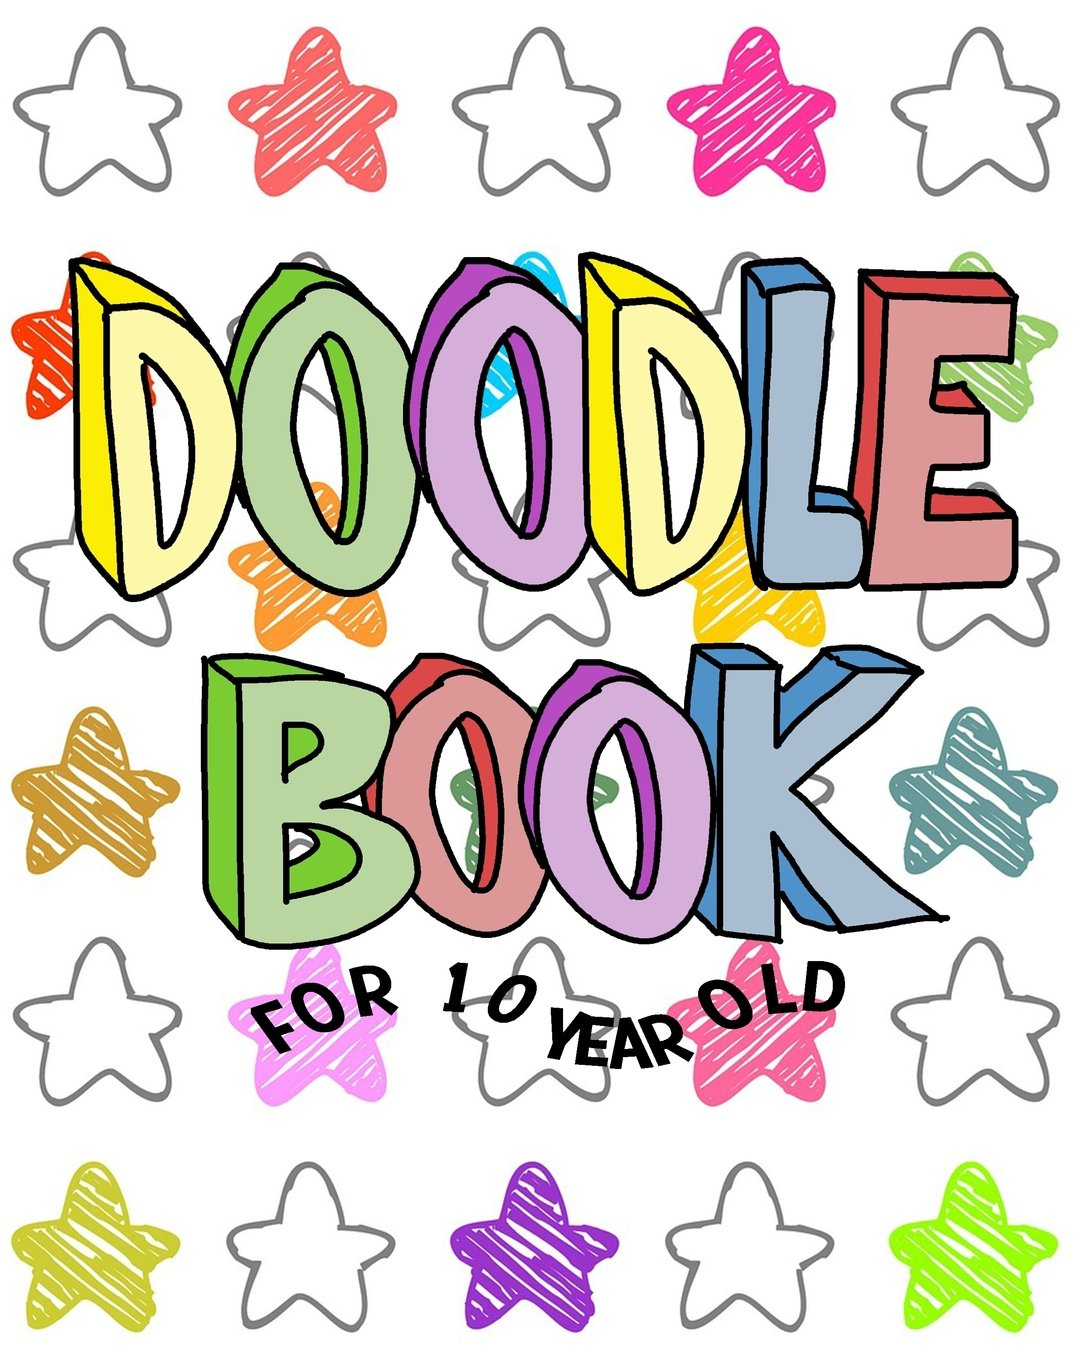 1088x1360 doodle book for year old blank doodle draw sketch book dartan